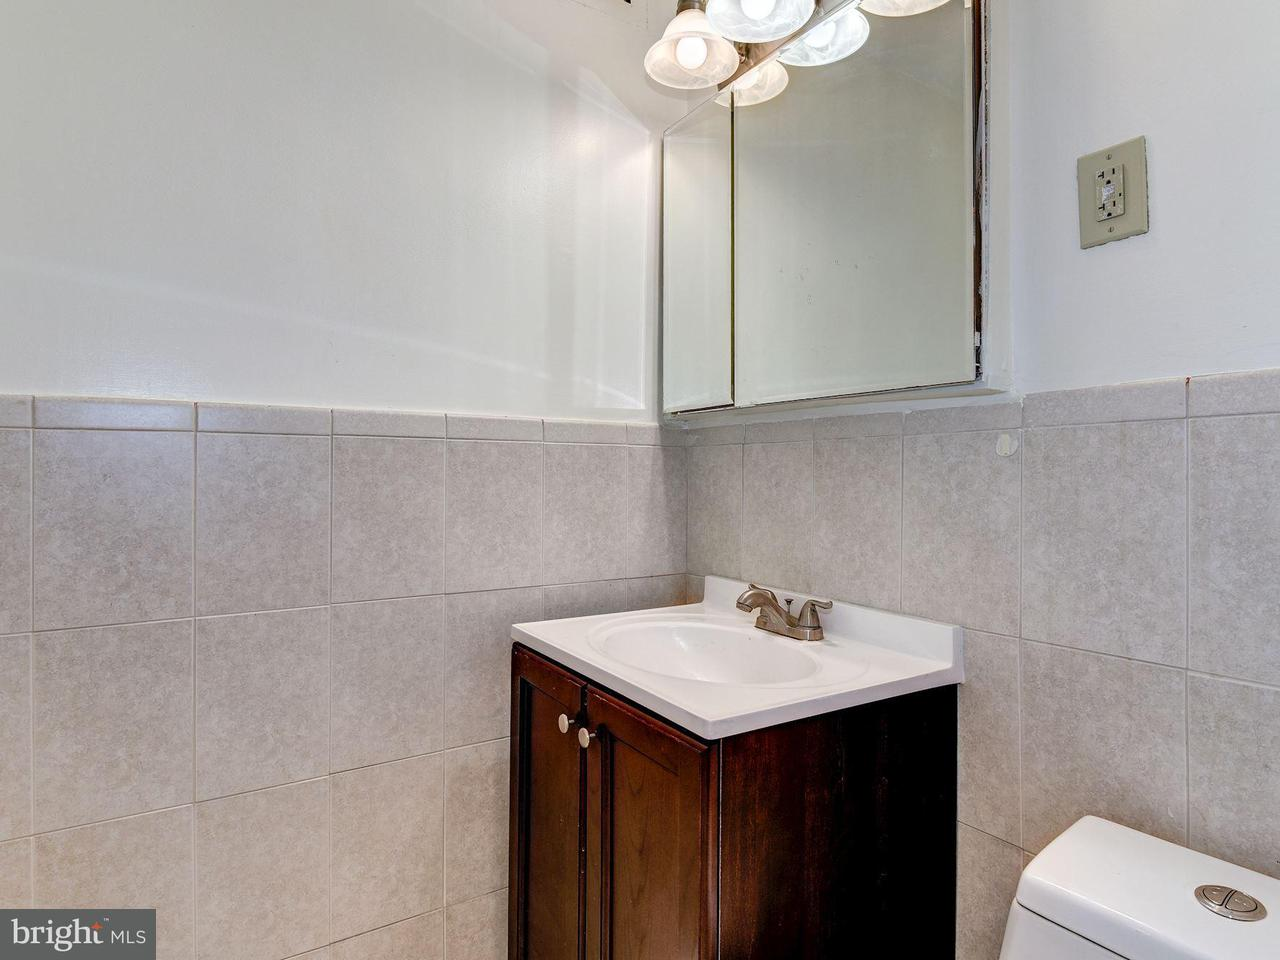 Additional photo for property listing at 4740 Connecticut Ave Nw #108 4740 Connecticut Ave Nw #108 Washington, 哥倫比亞特區 20008 美國